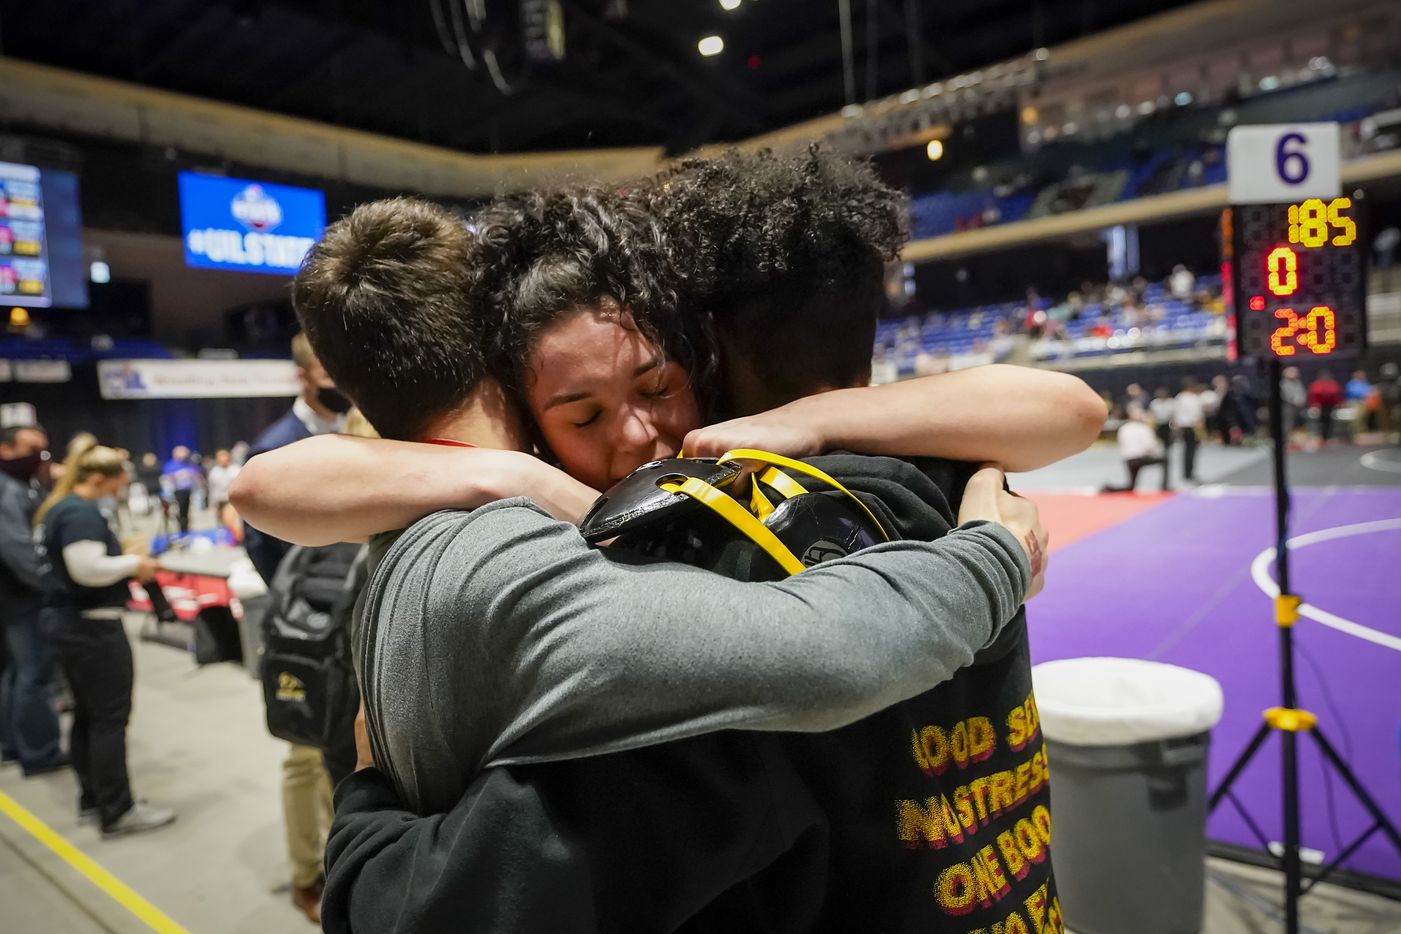 Elizabeth Grabiec of Lewisville The Colony celebrates with teammates after defeating Jillian Wold of Comal Canyon for the 5A girls 165-pound championship during the UIL State Wrestling tournament at the Berry Center on Friday, April 23, 2021, in Cypress, Texas.